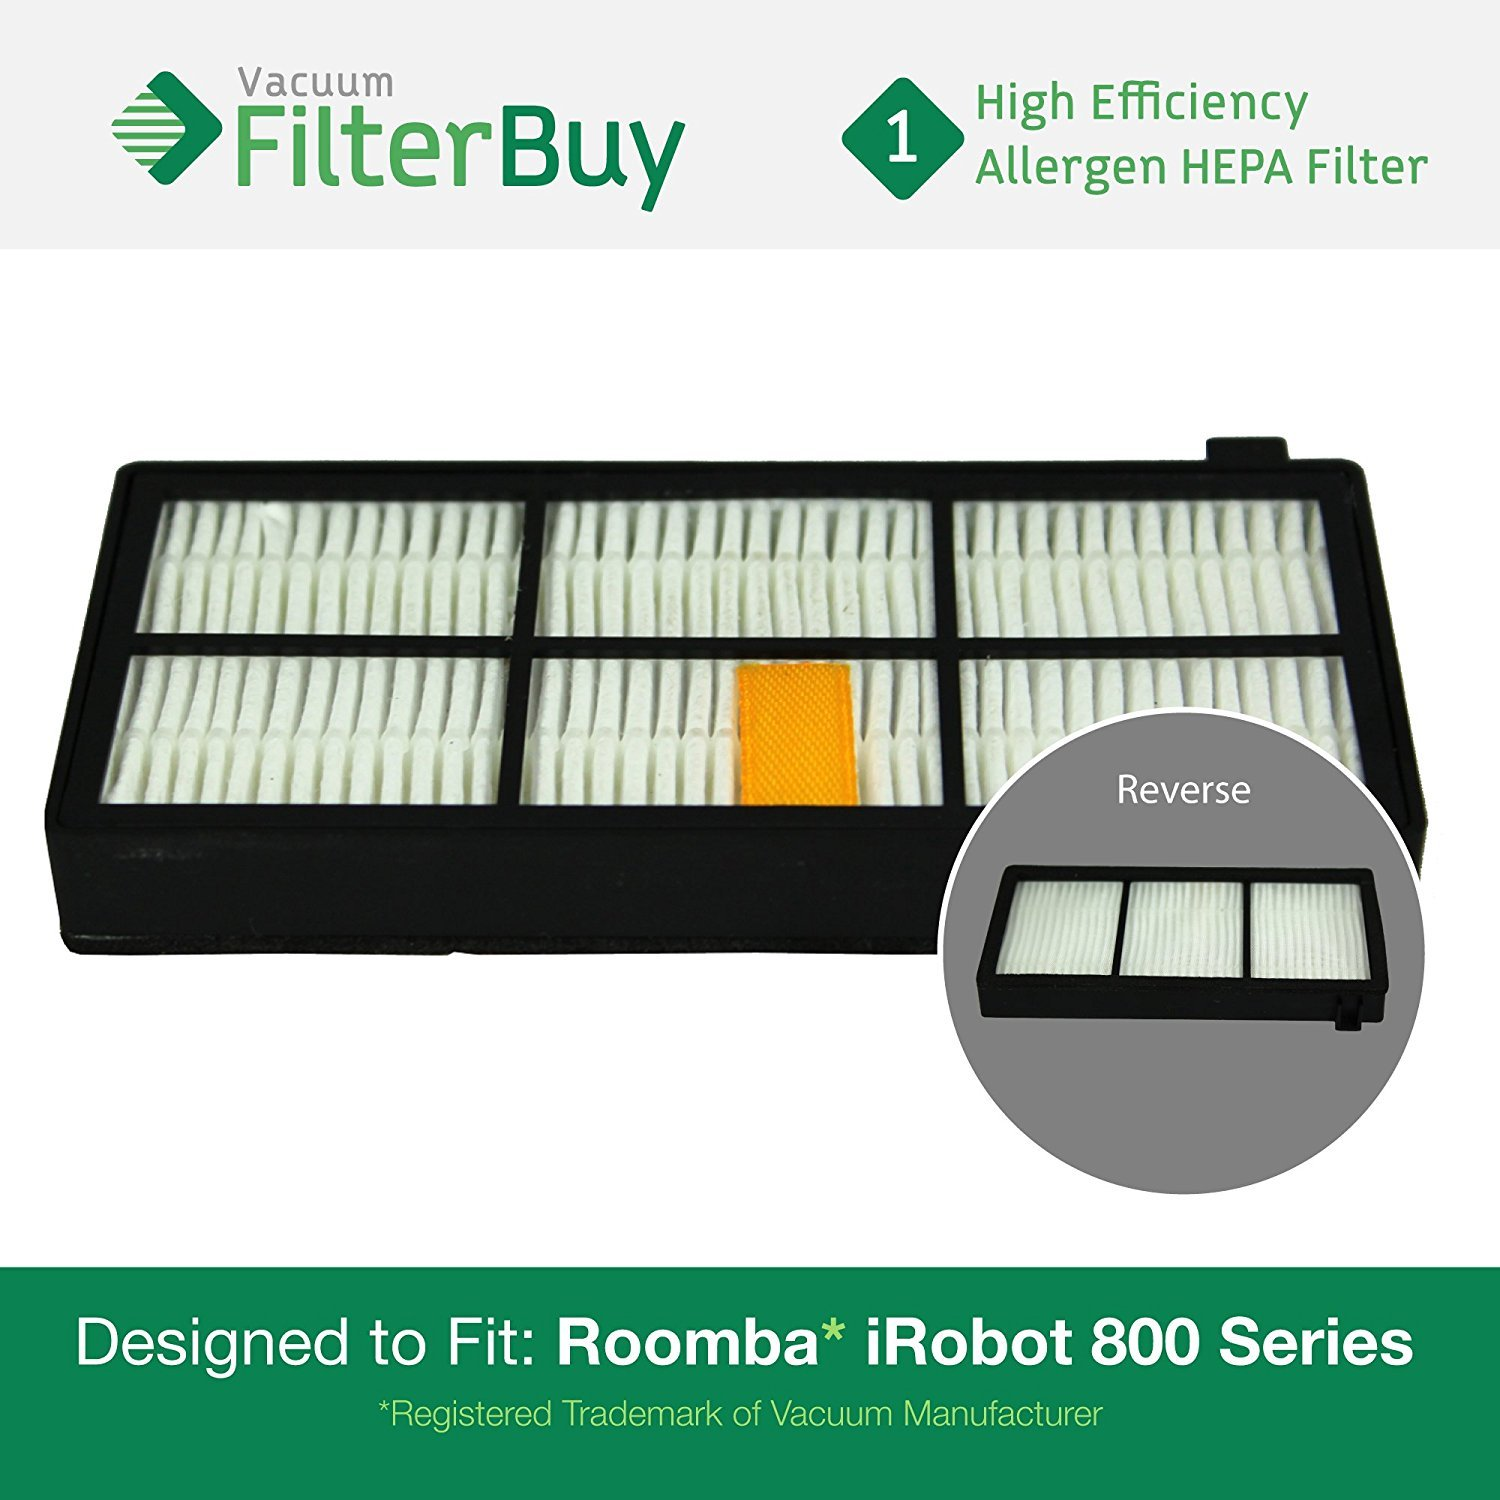 iRobot Roomba 800 900 Series AeroForce Replacement Filter. Designed by FilterBuy to replace all iRobot Roomba 800 & 900 Series Vacuum Filters